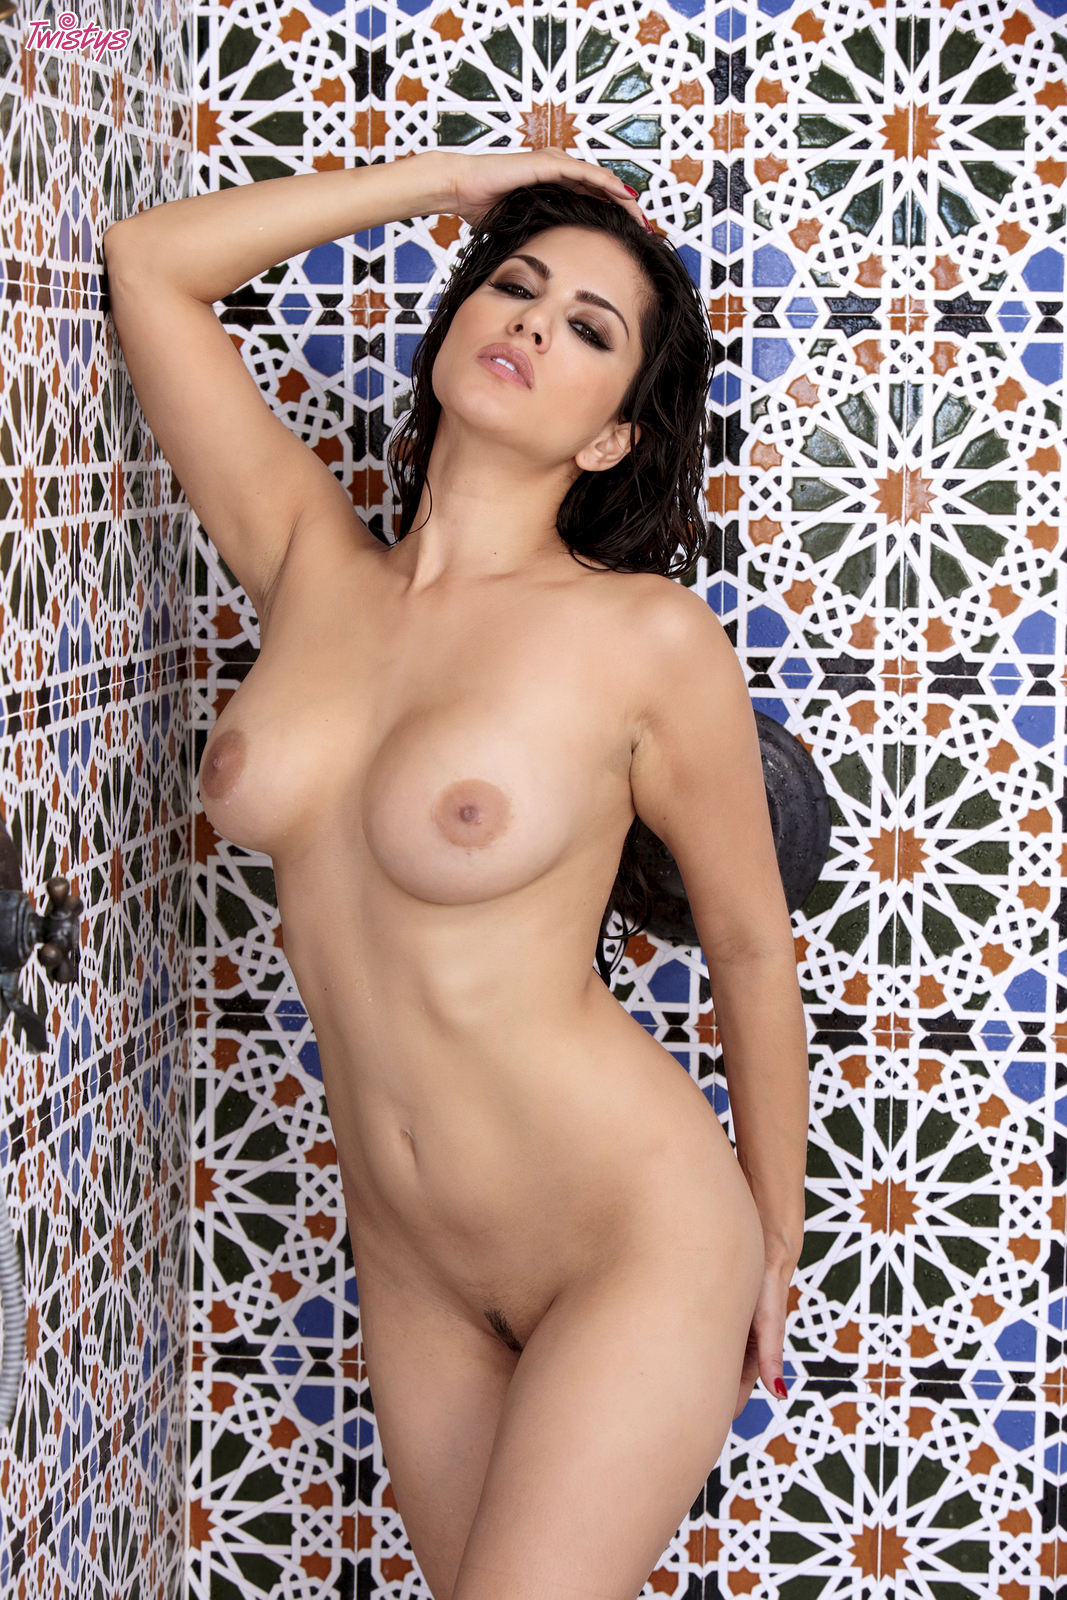 Theme interesting, Sunny leone nude slut for that